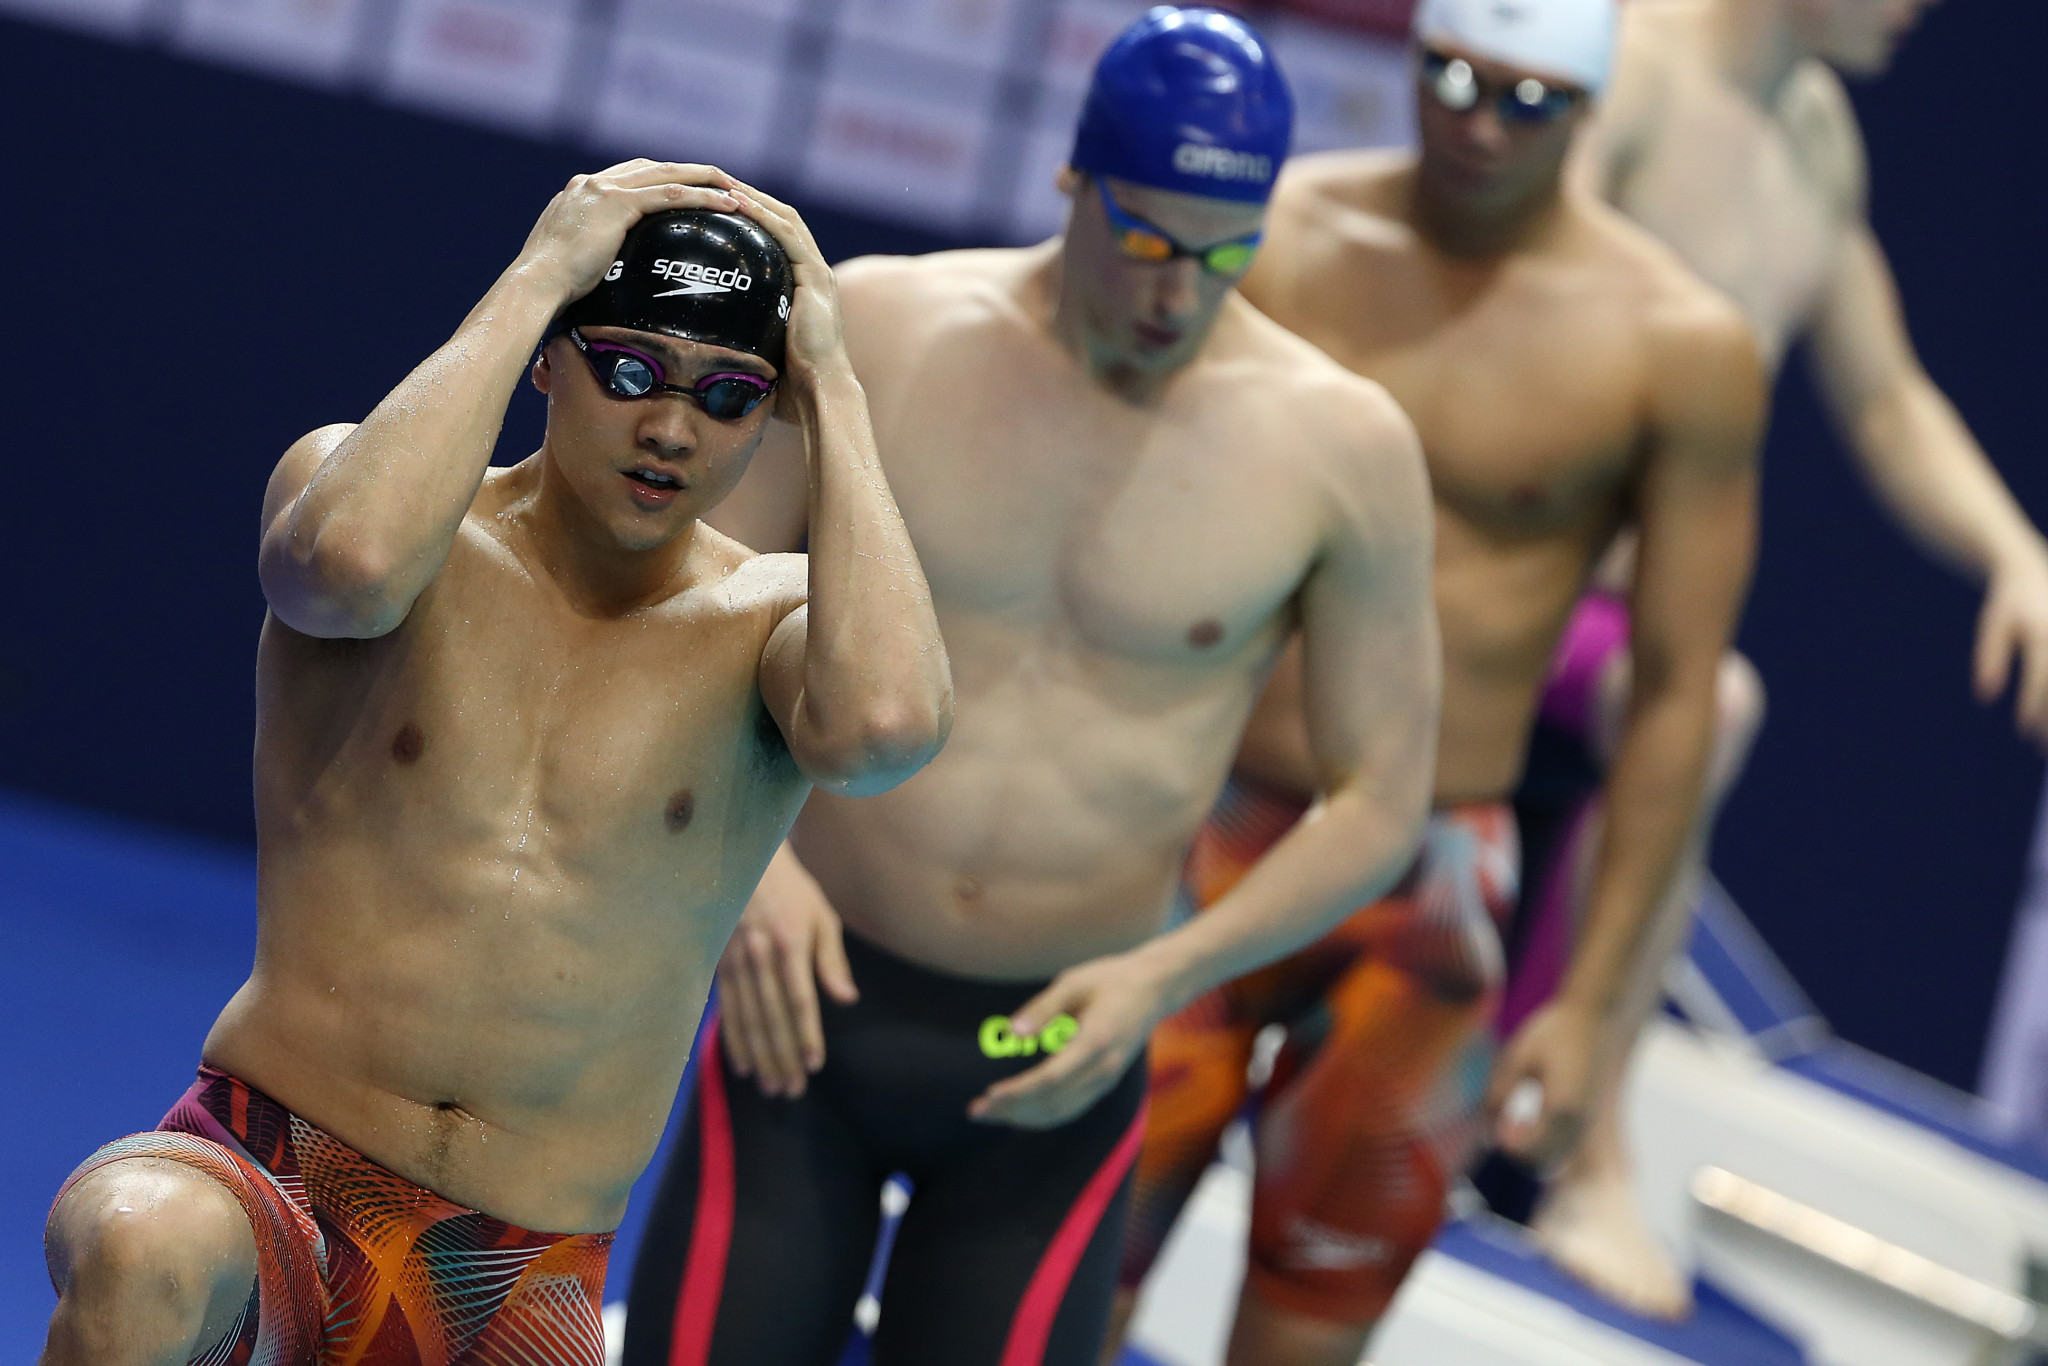 Singapore's Schooling has been training in the United States ahead of Tokyo 2020 ©Getty Images